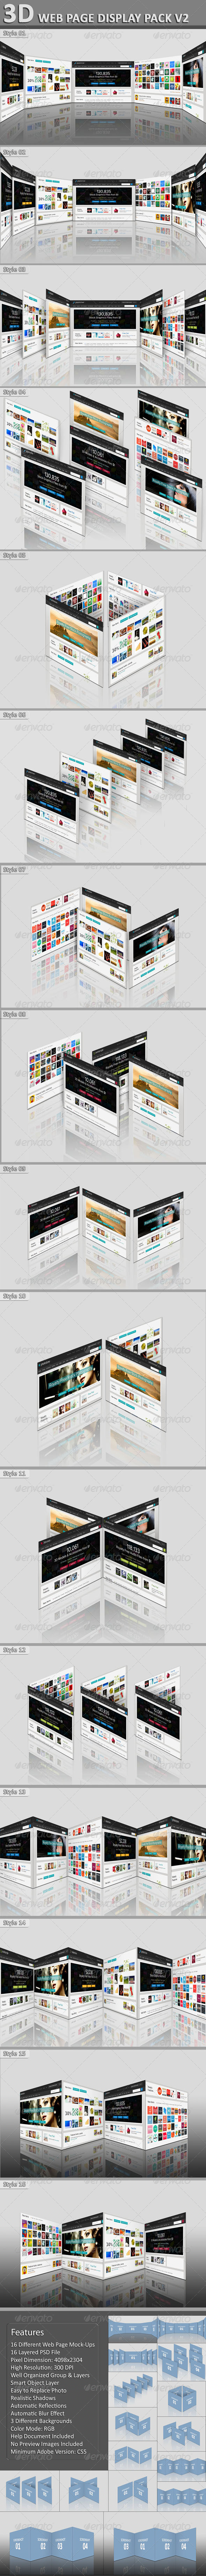 GraphicRiver 3D Web Page Display Pack V2 5422587